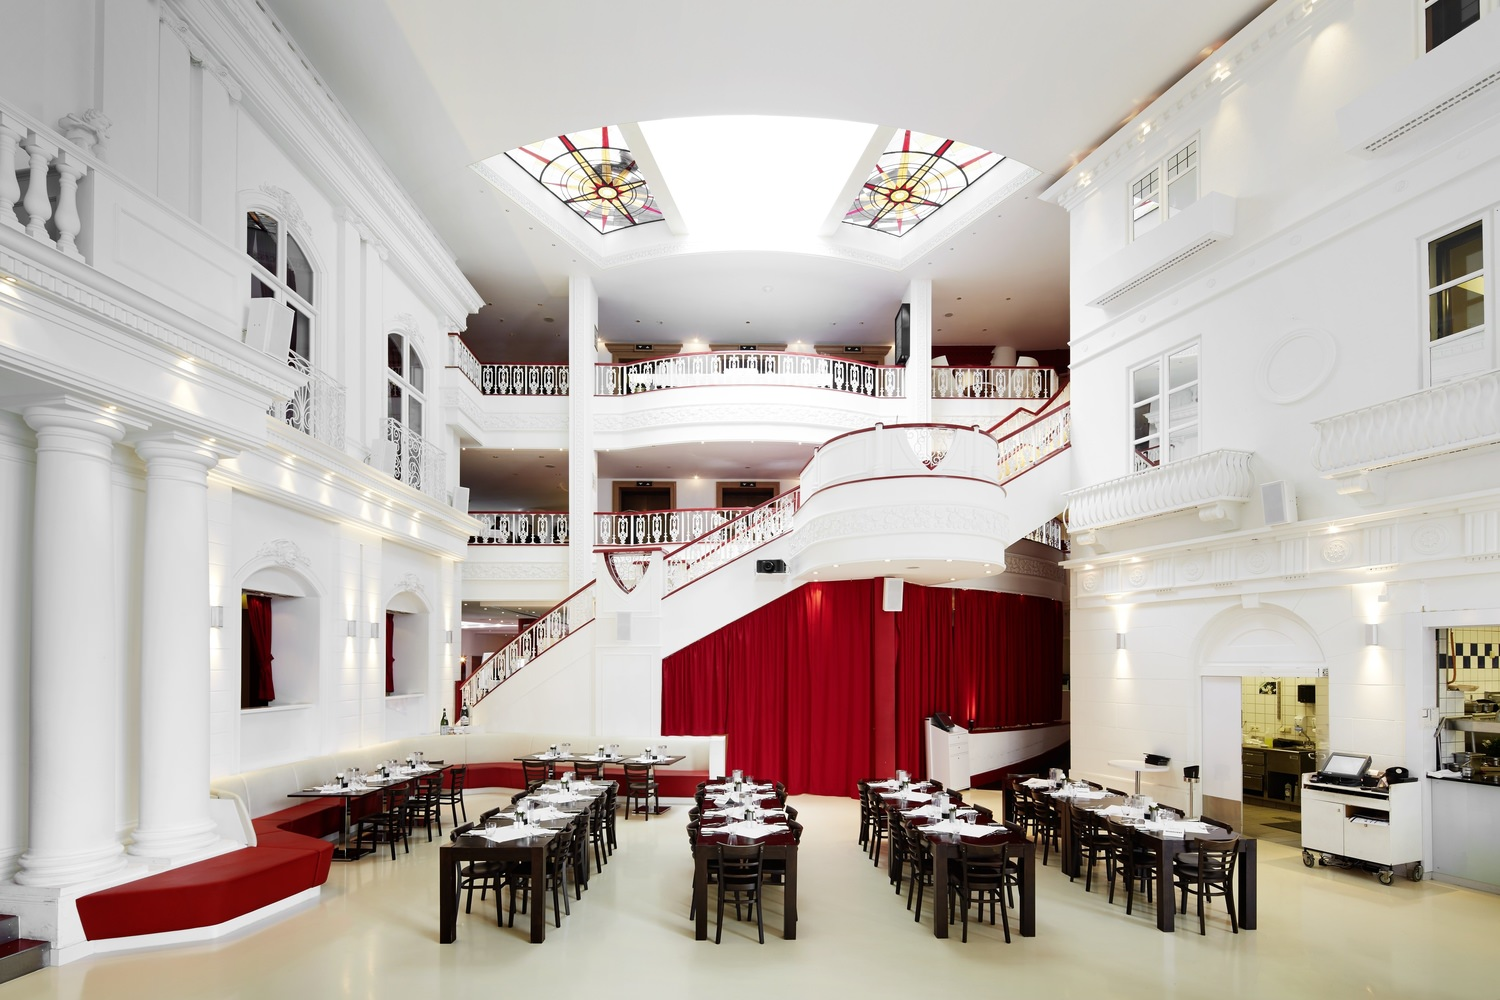 A large indoor lobby full of tables and chairs with a flight of stairs in the background.